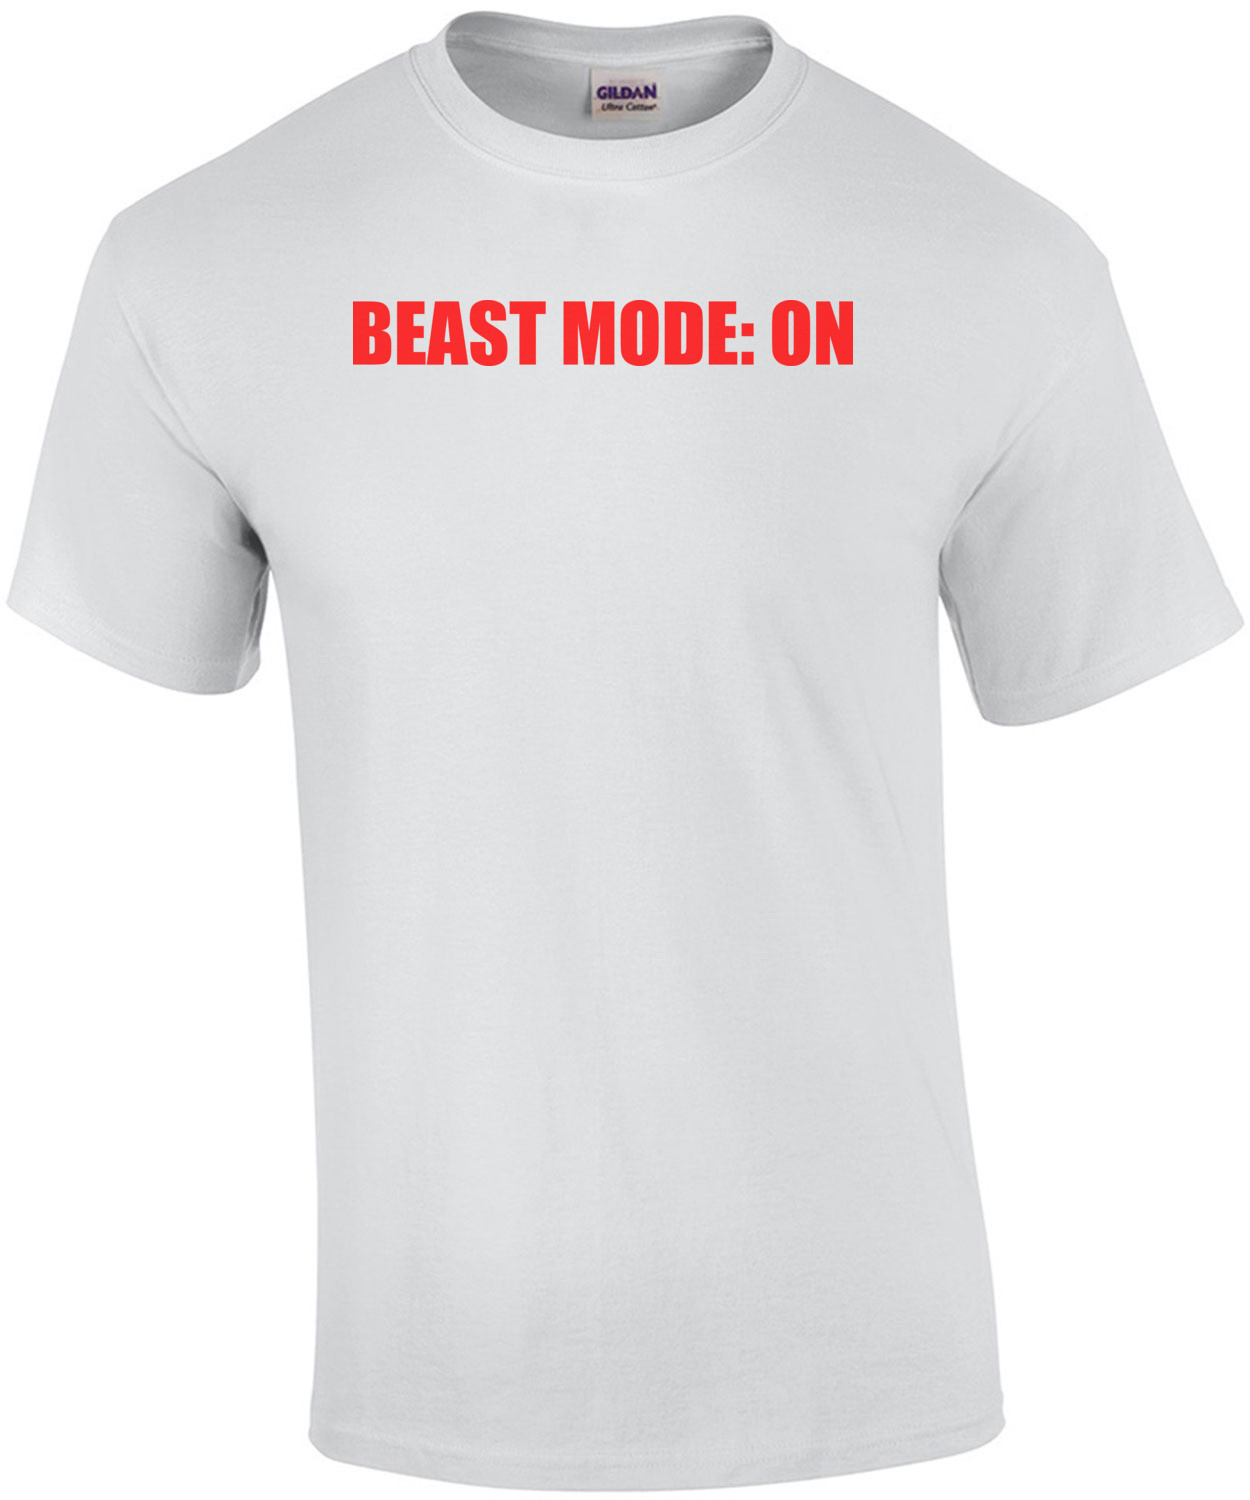 BEAST MODE: ON Funny Shirt